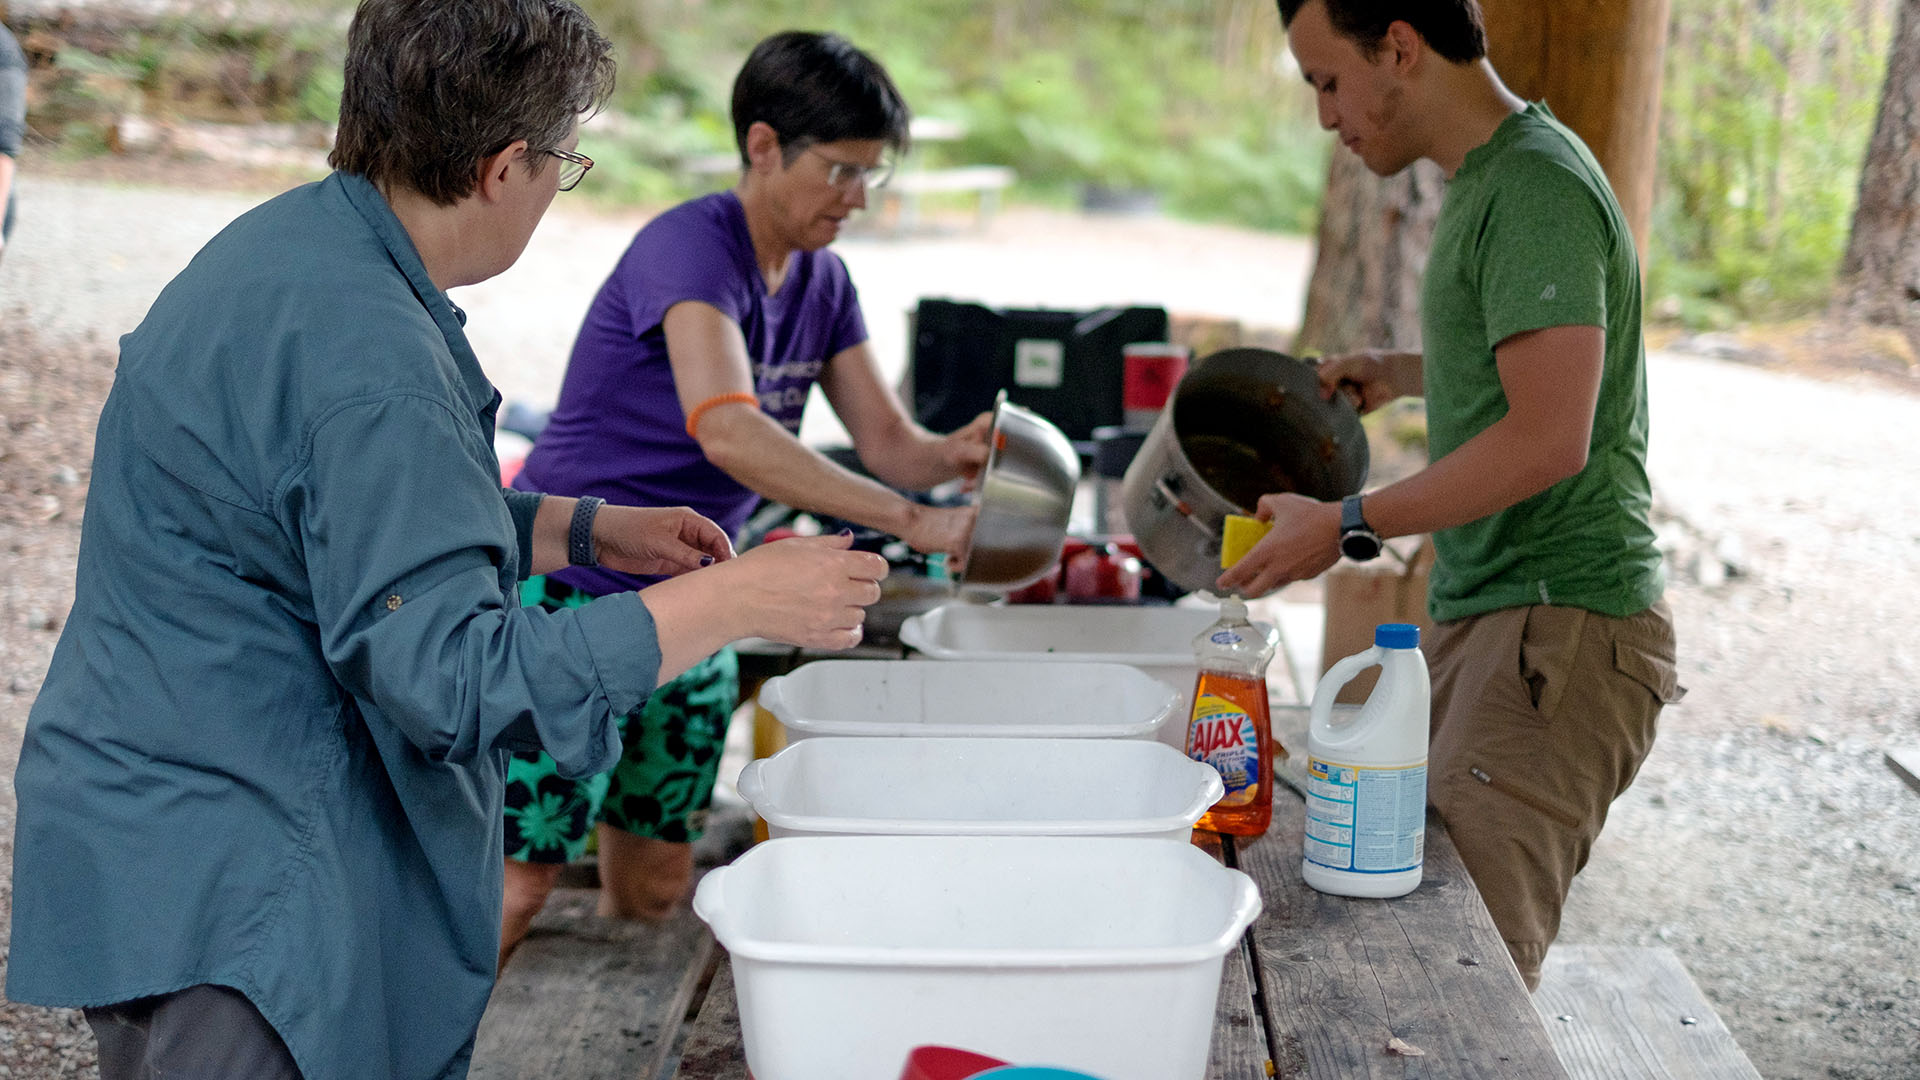 Campers wash dishes in plastic bins